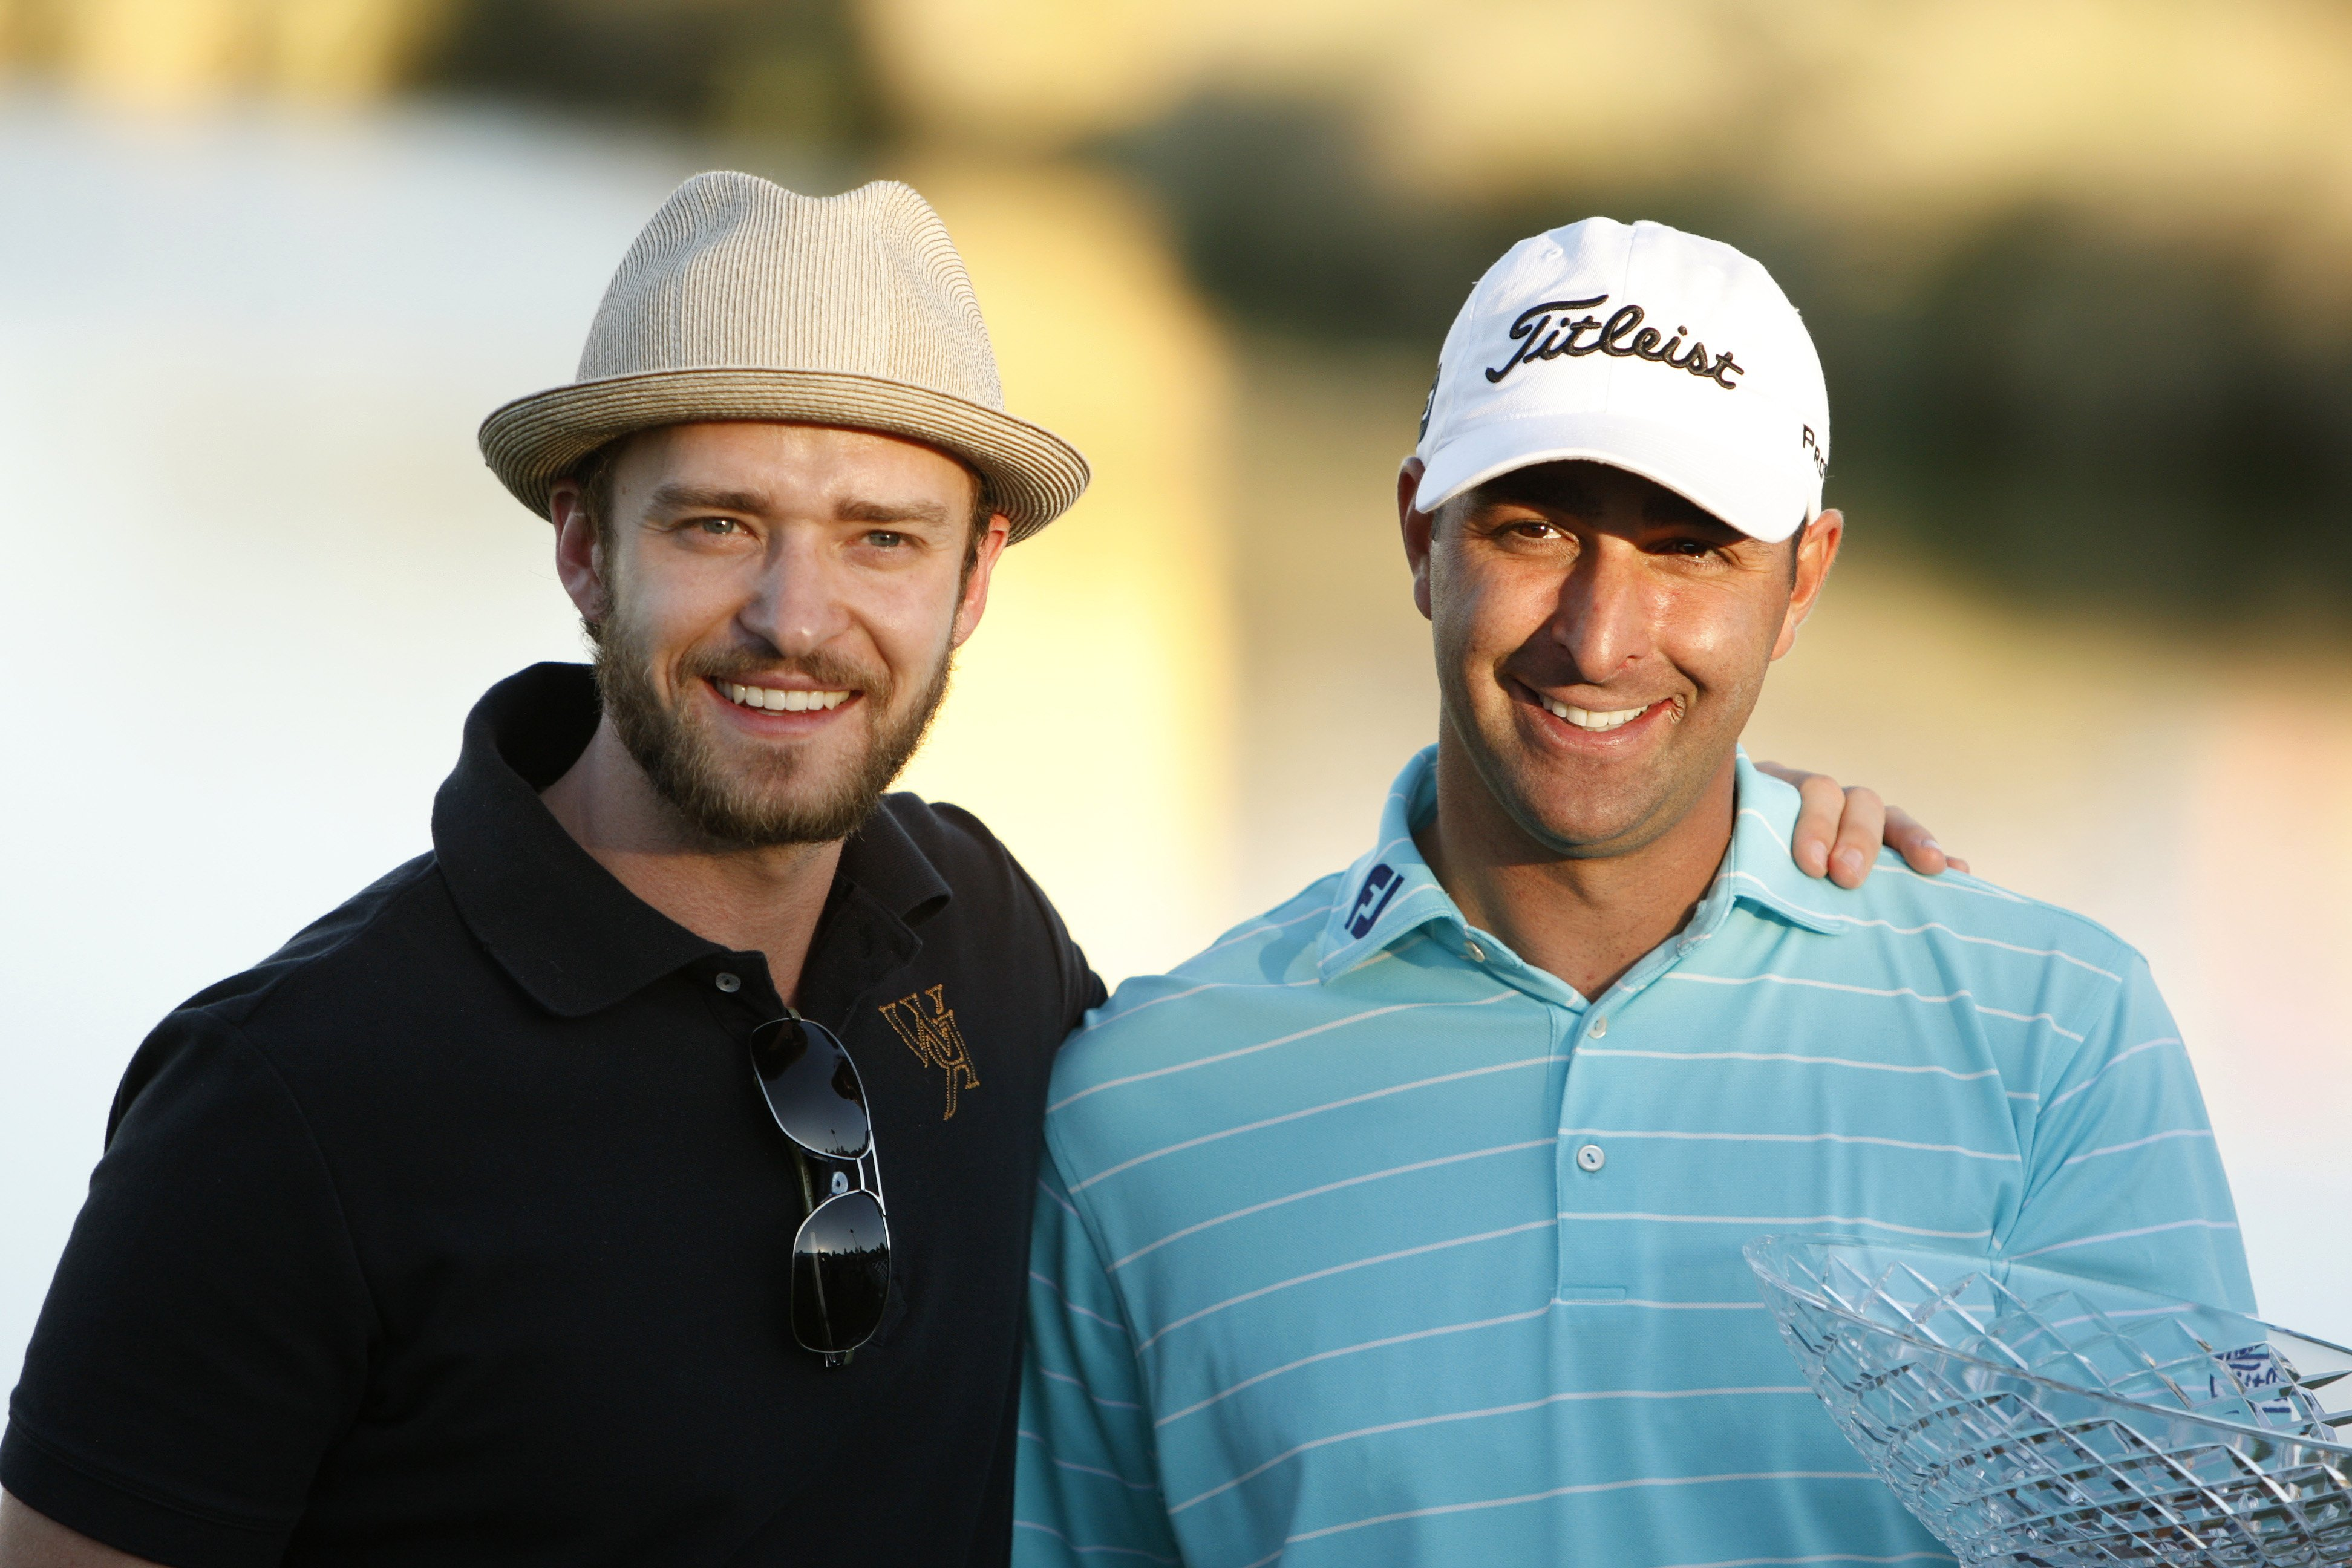 29121435fc8dd Rookie leads wire to wire for first PGA Tour title